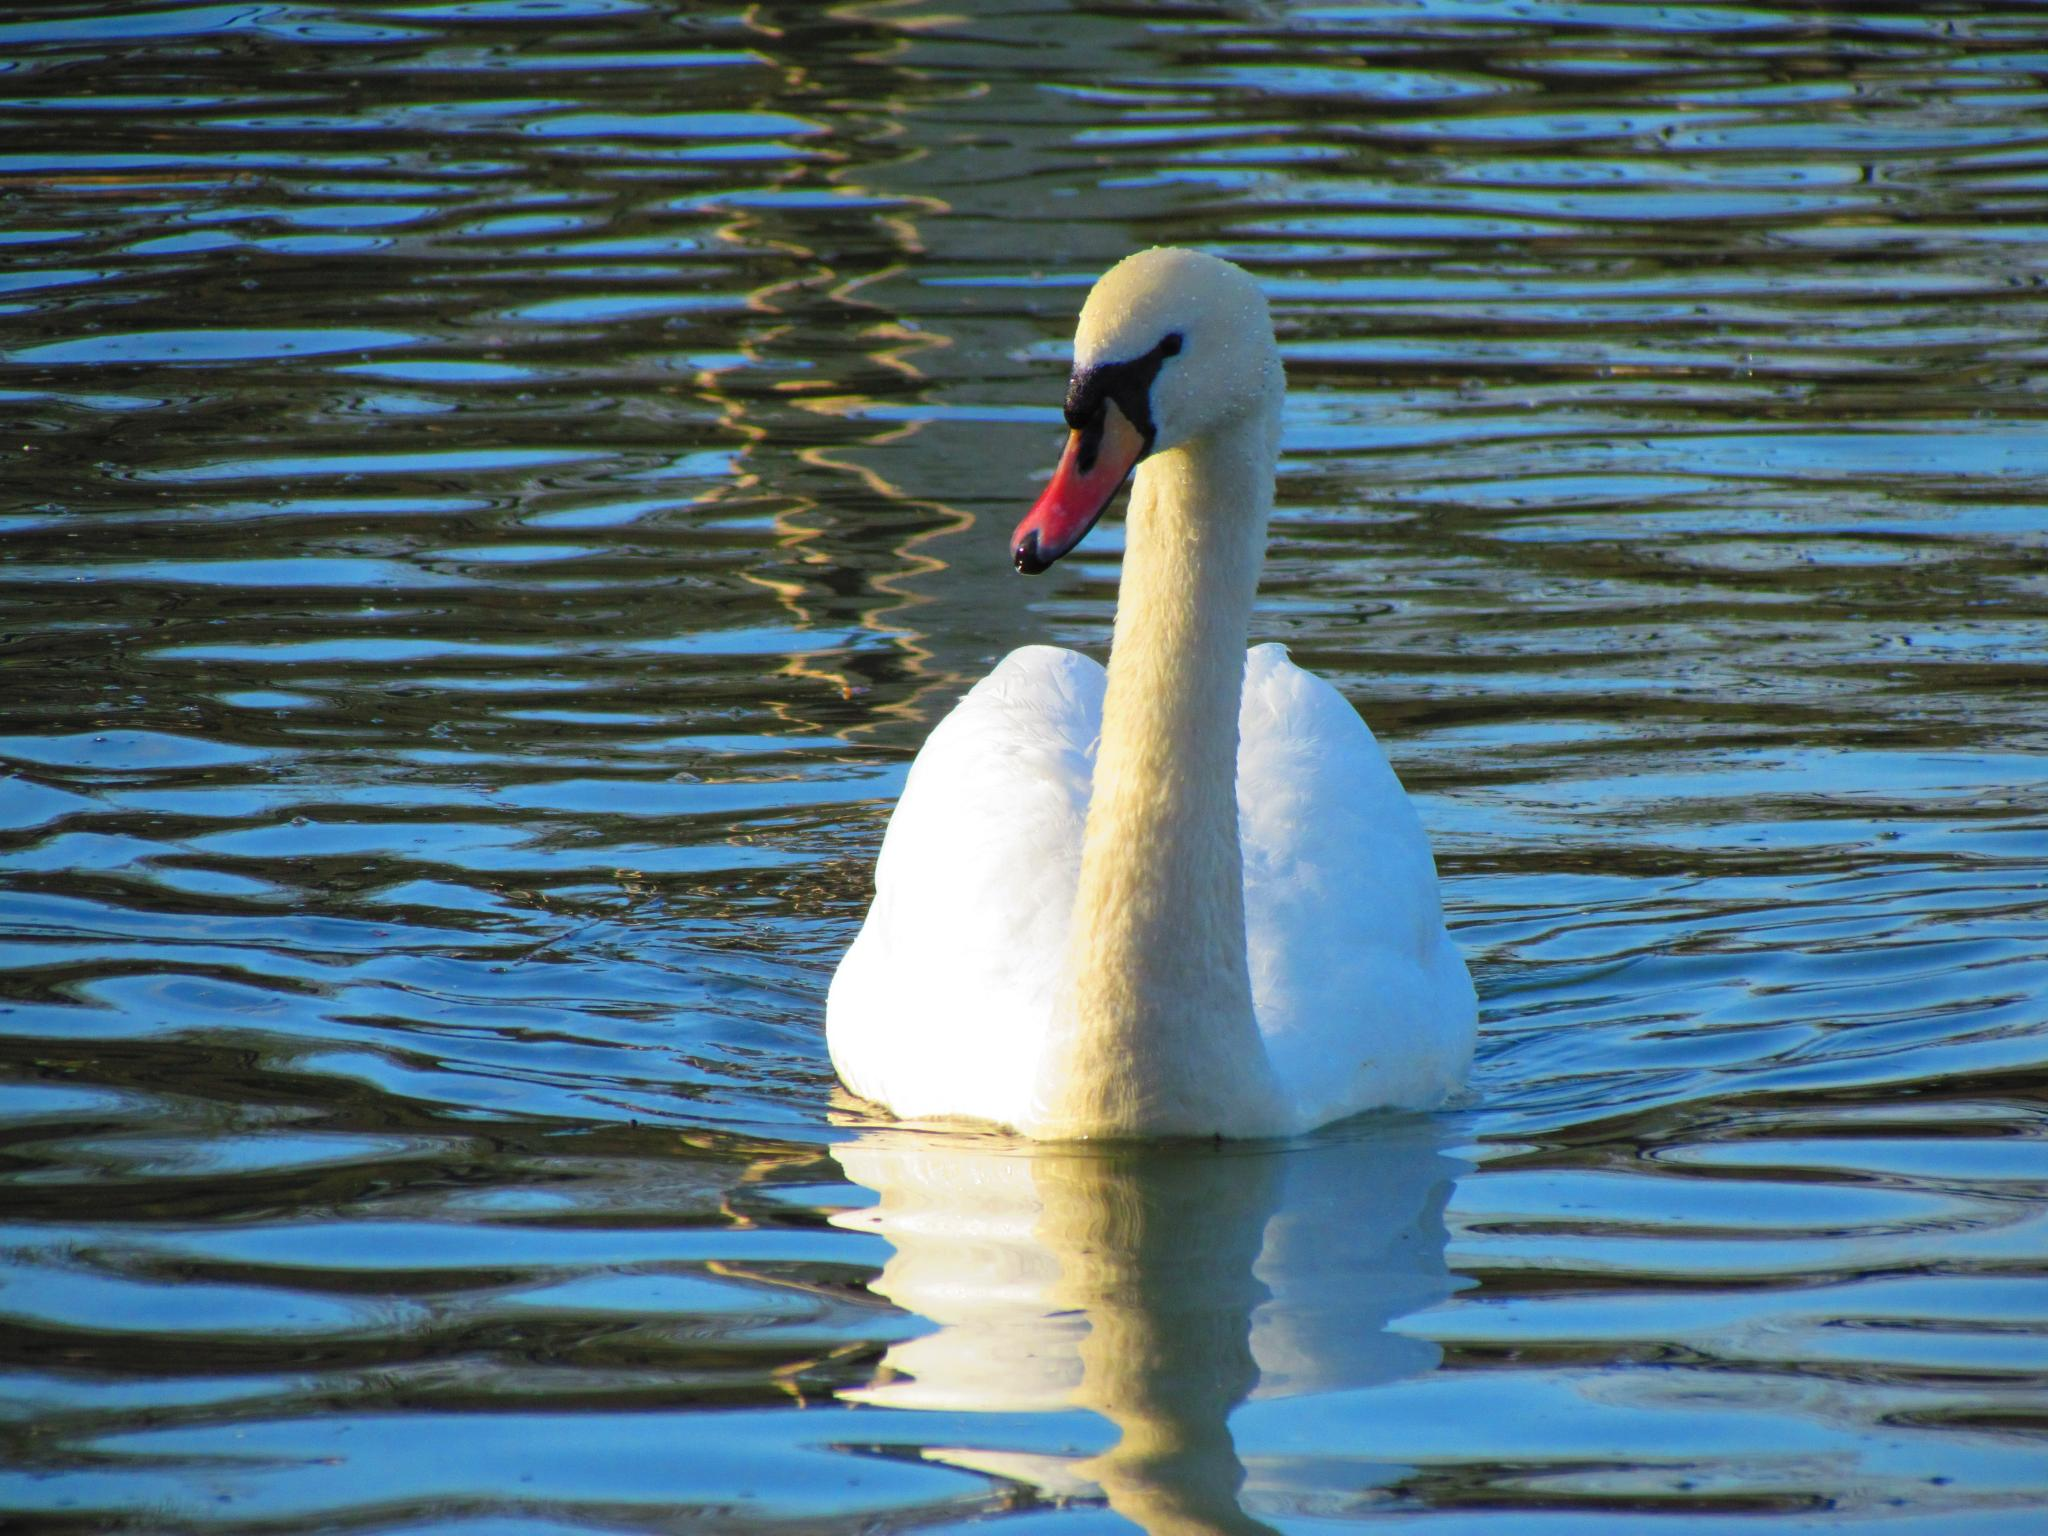 Swans Have Come Back >> The Fascinating, Regal History Behind Britain's Swans | History | Smithsonian